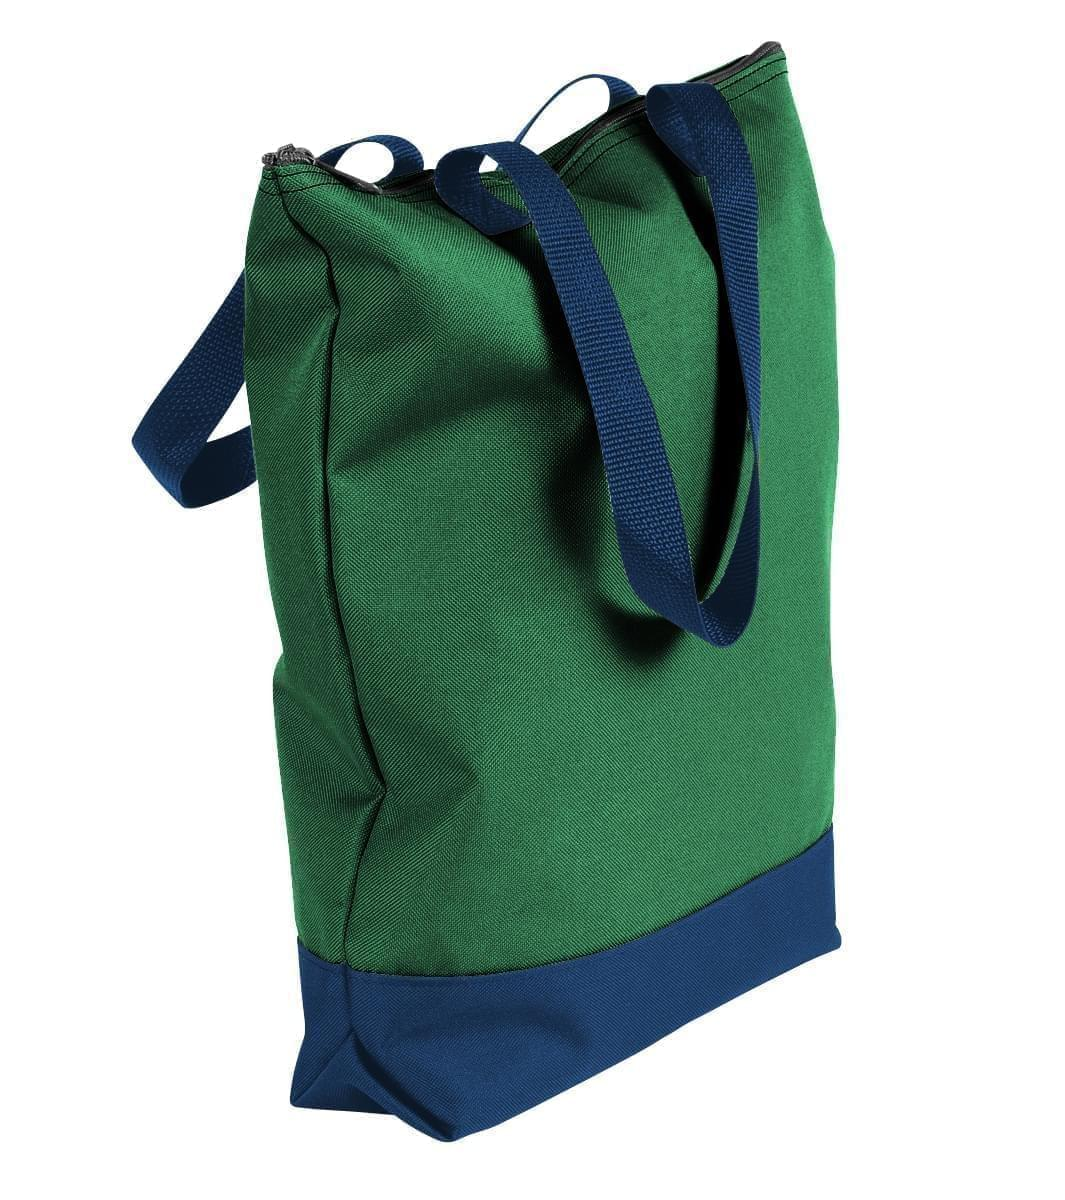 USA Made Poly Notebook Tote Bags, Kelly Green-Navy, 1AAMX1UATZ